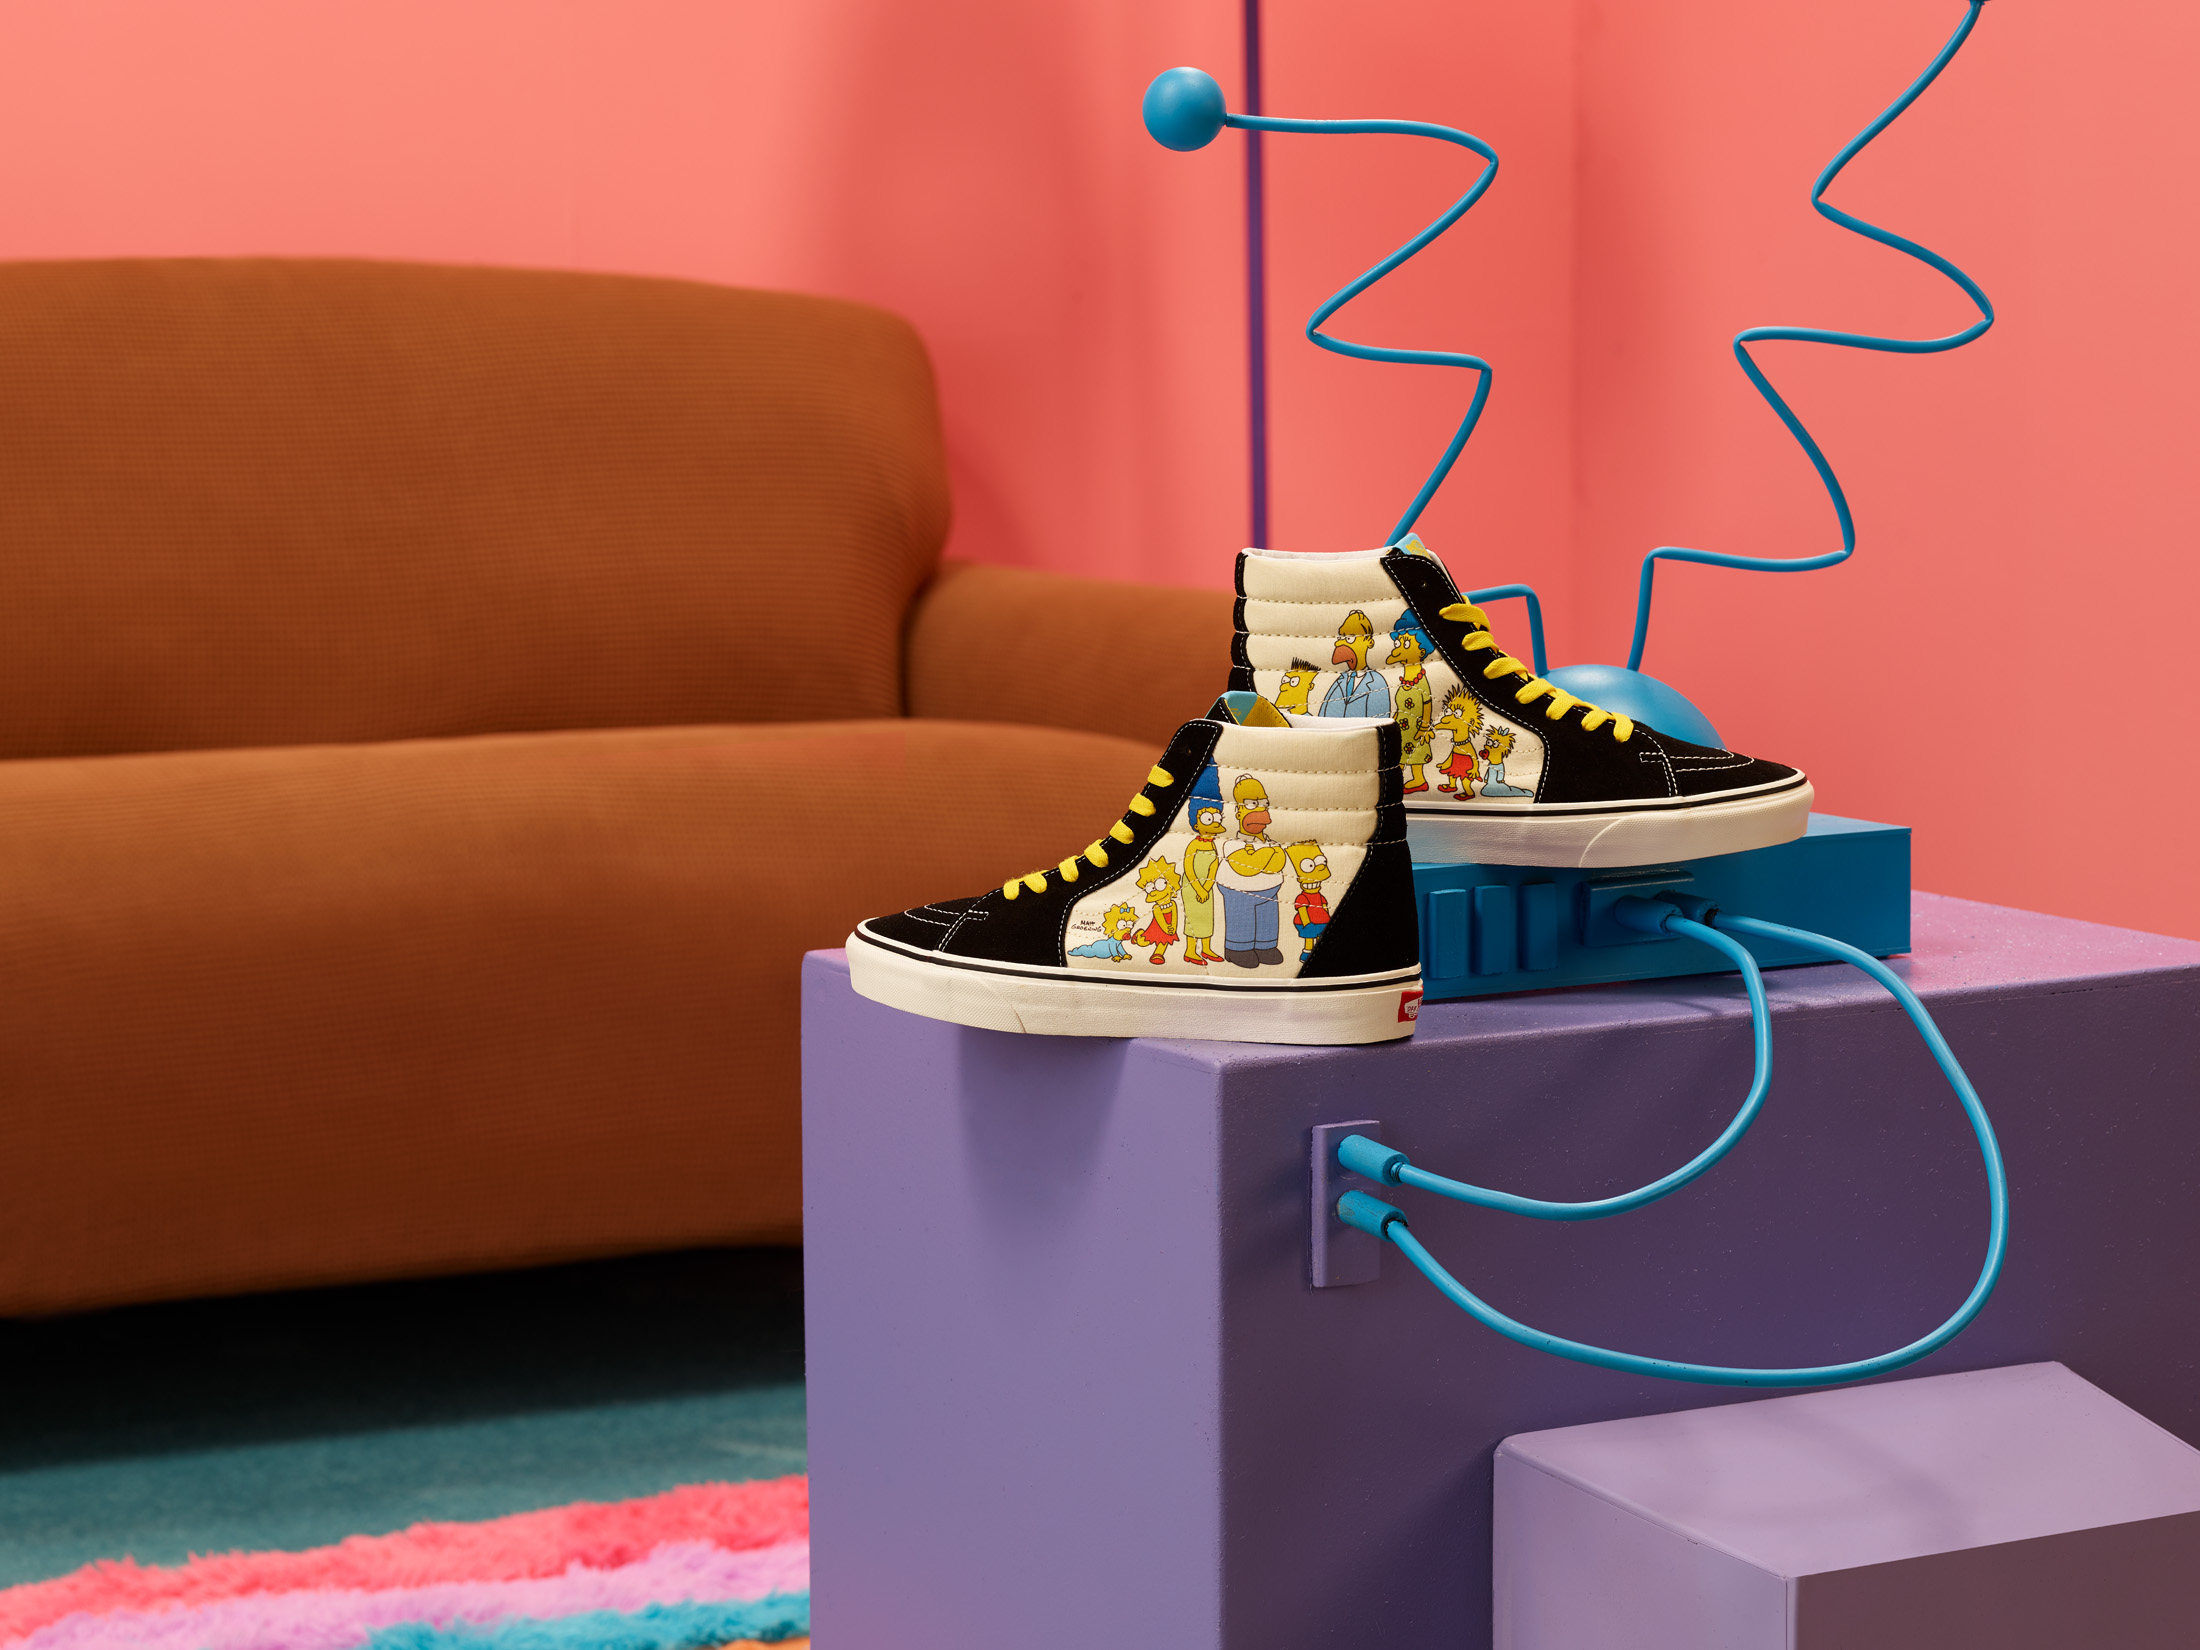 FA20_Simpsons_VN0A4BV617E_VansXTheSimpsons_SK8Hi_1987_2020_Elevated_0068